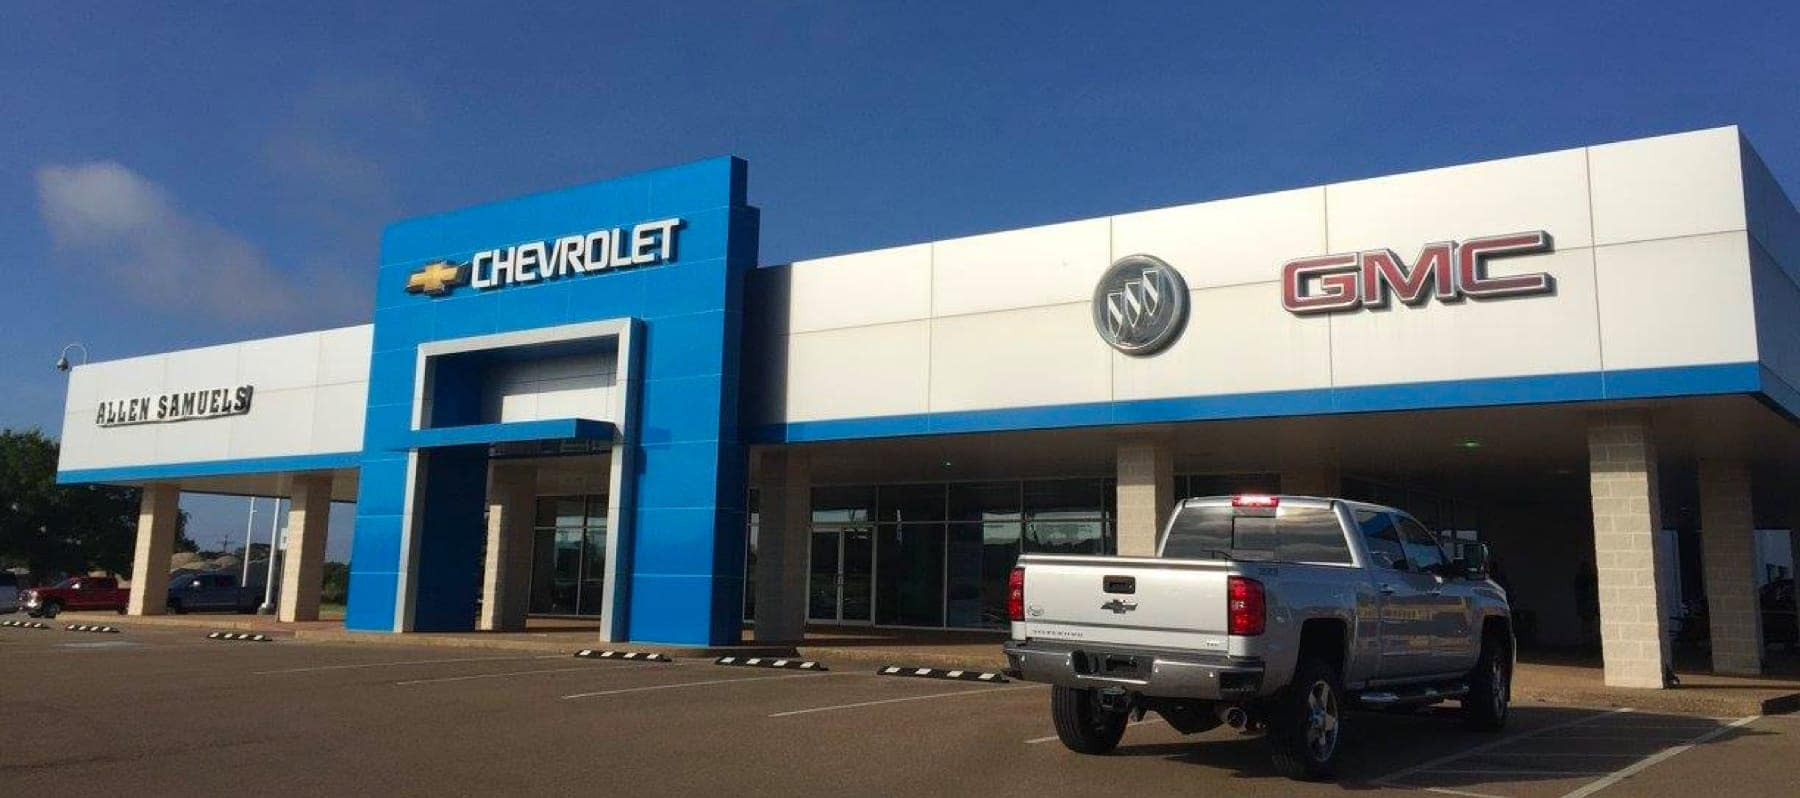 Outside view of the dealership